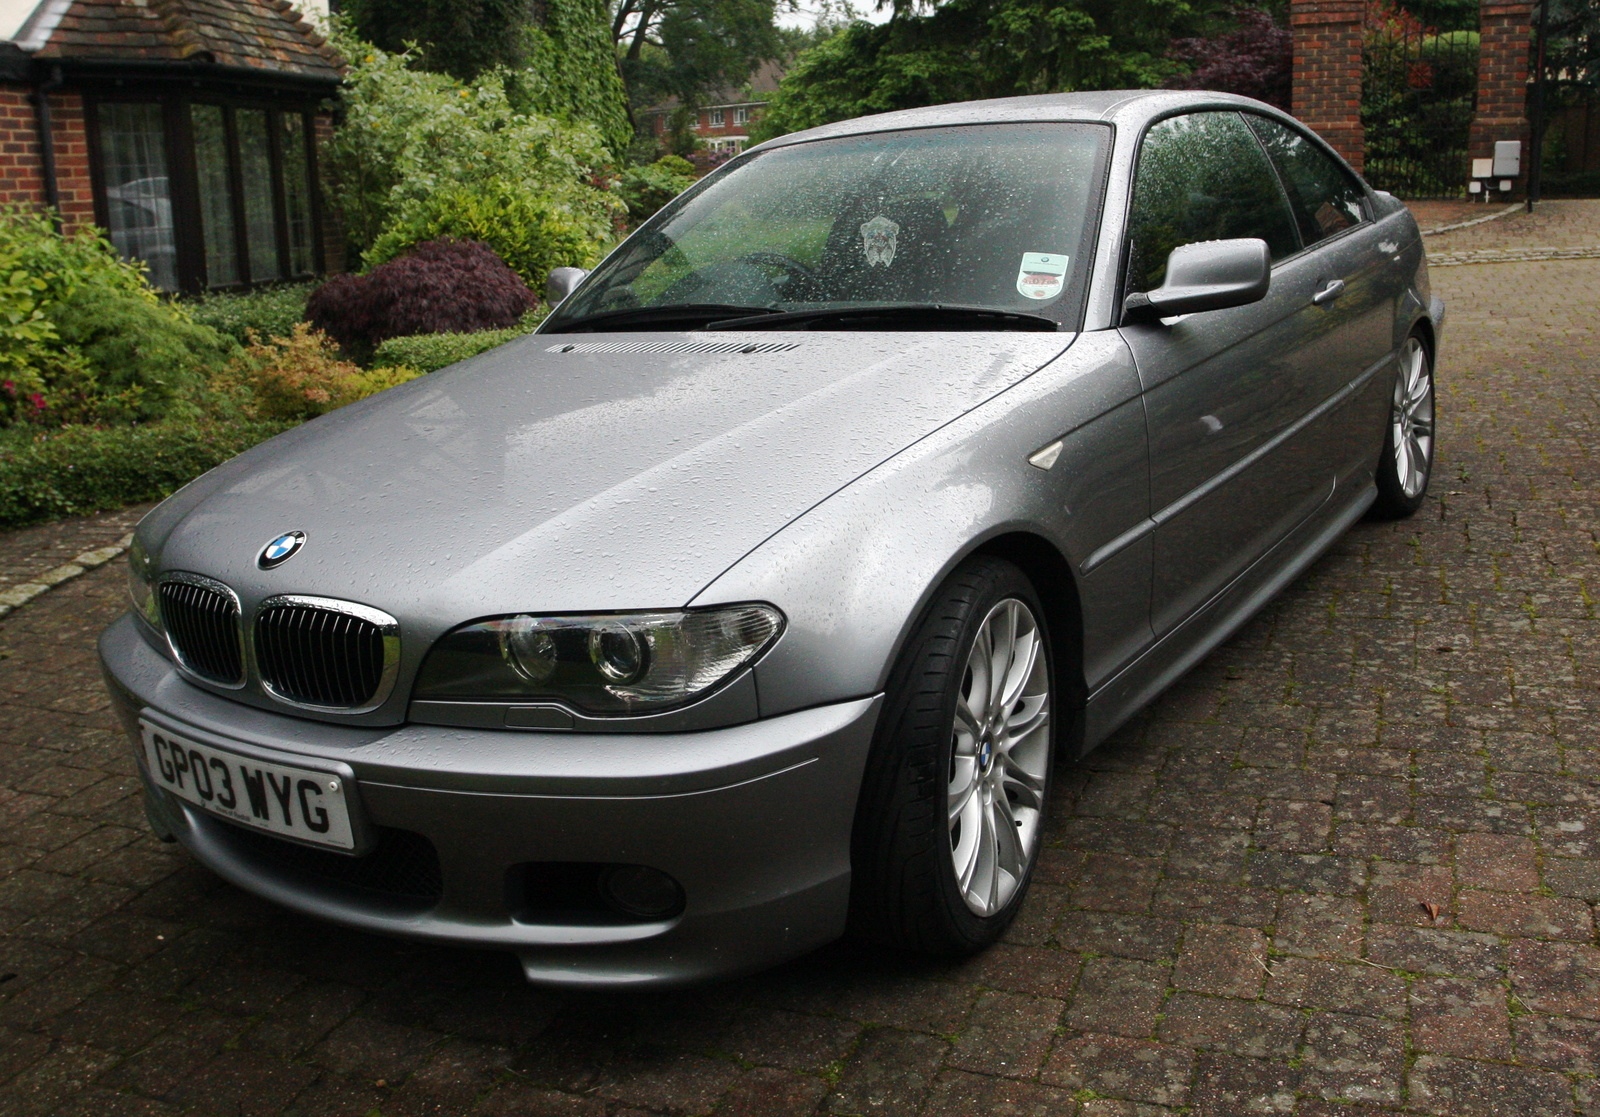 BMW 3 series 320i 2003 photo - 11